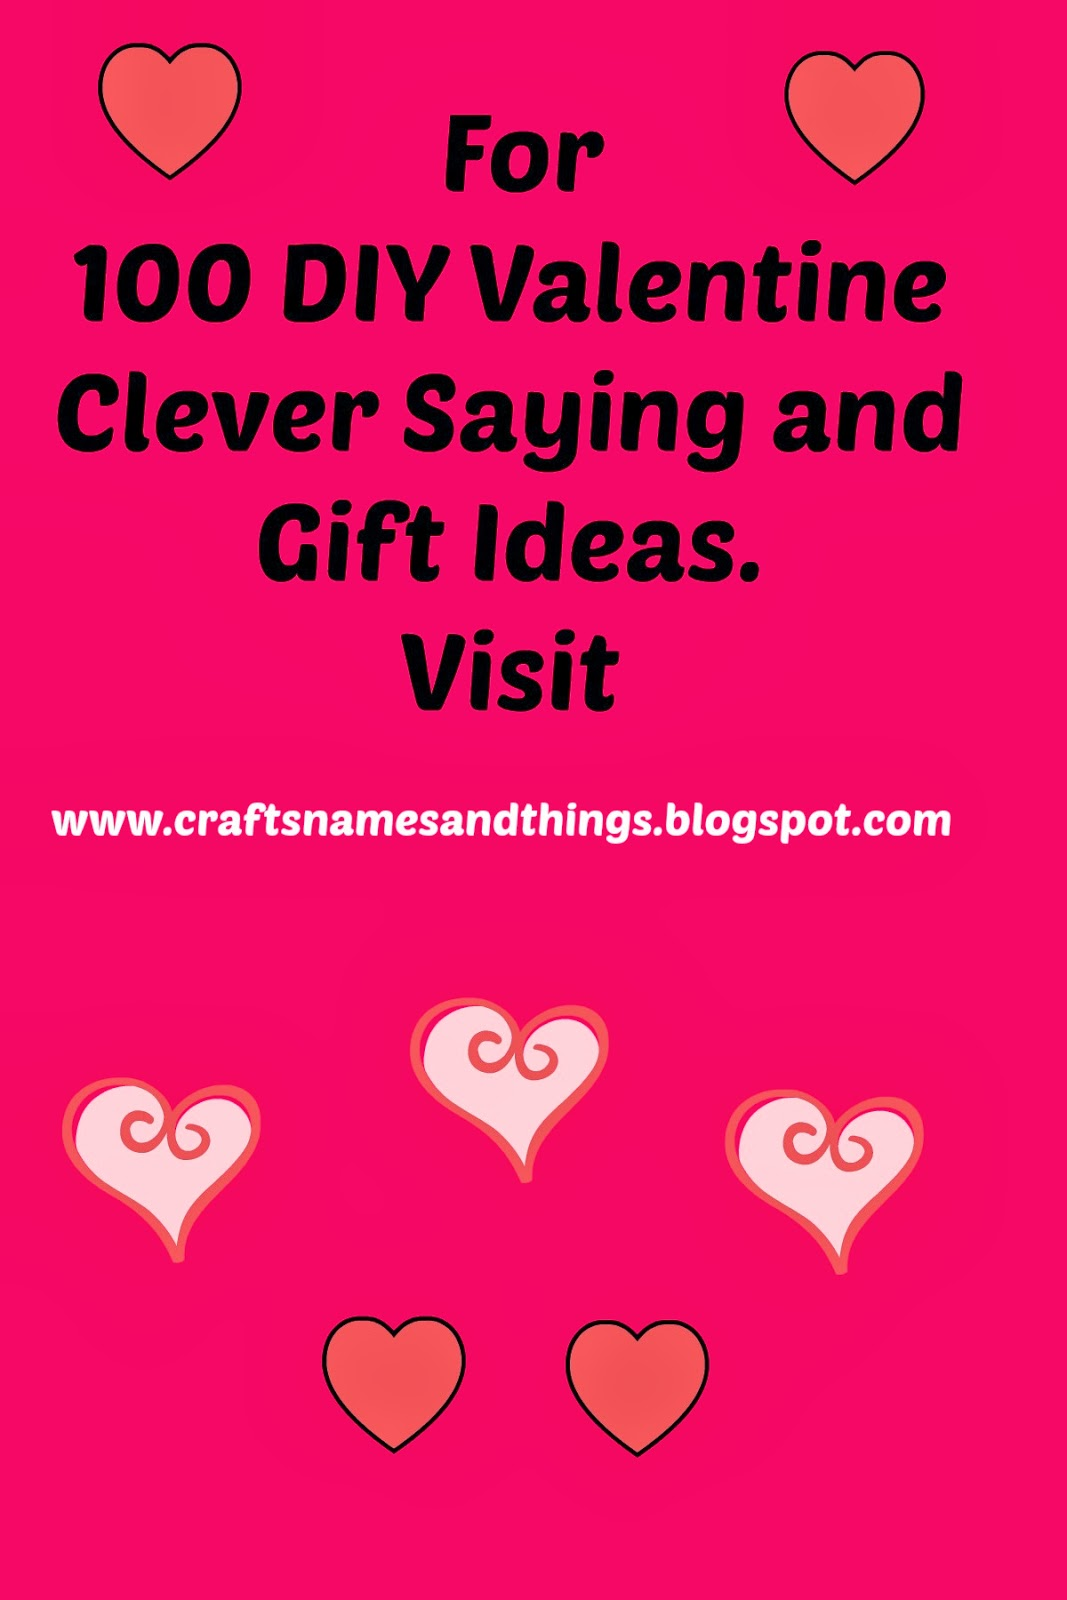 100 diy valentine ideas and clever sayings the first 50part one of two - Clever Valentine Sayings